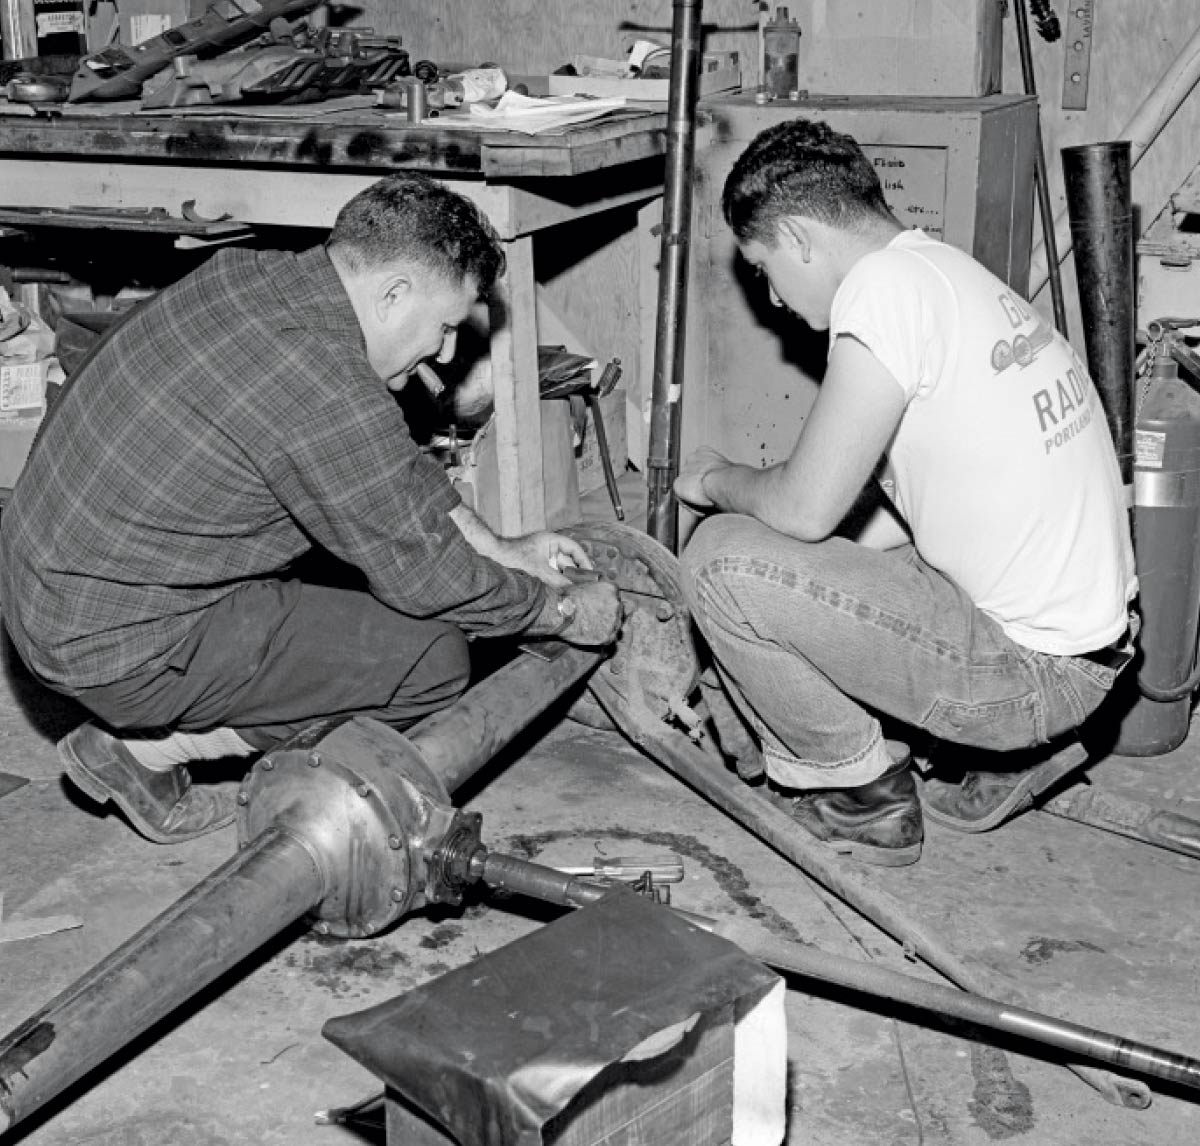 Hot rodders working on car